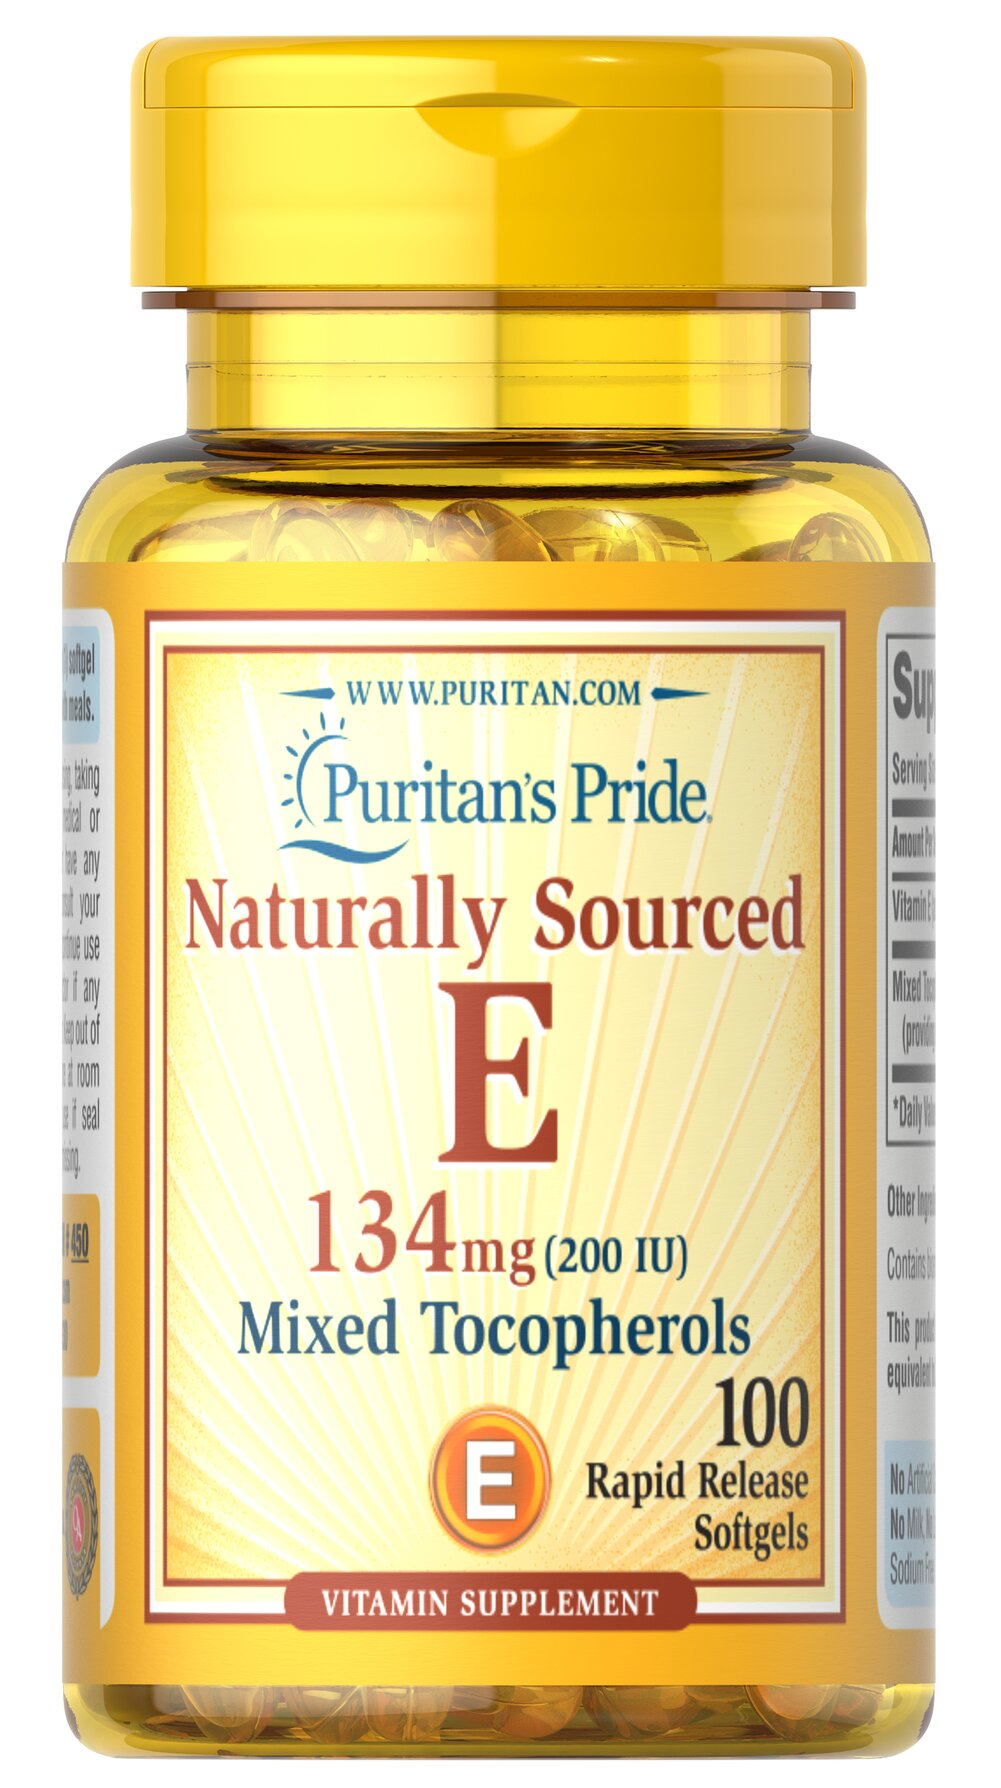 Vitamin E-200 iu Mixed Tocopherols Natural <p><b>Vitamin E</b> promotes immune function and helps support cardiovascular health.** Vitamin E is also a powerful <b>antioxidant</b> that helps fight cell-damaging free radicals in the body.** Studies have shown that oxidative stress caused by free radicals may contribute to the premature aging of cells.**</p> 100 Softgels 200 IU $9.99